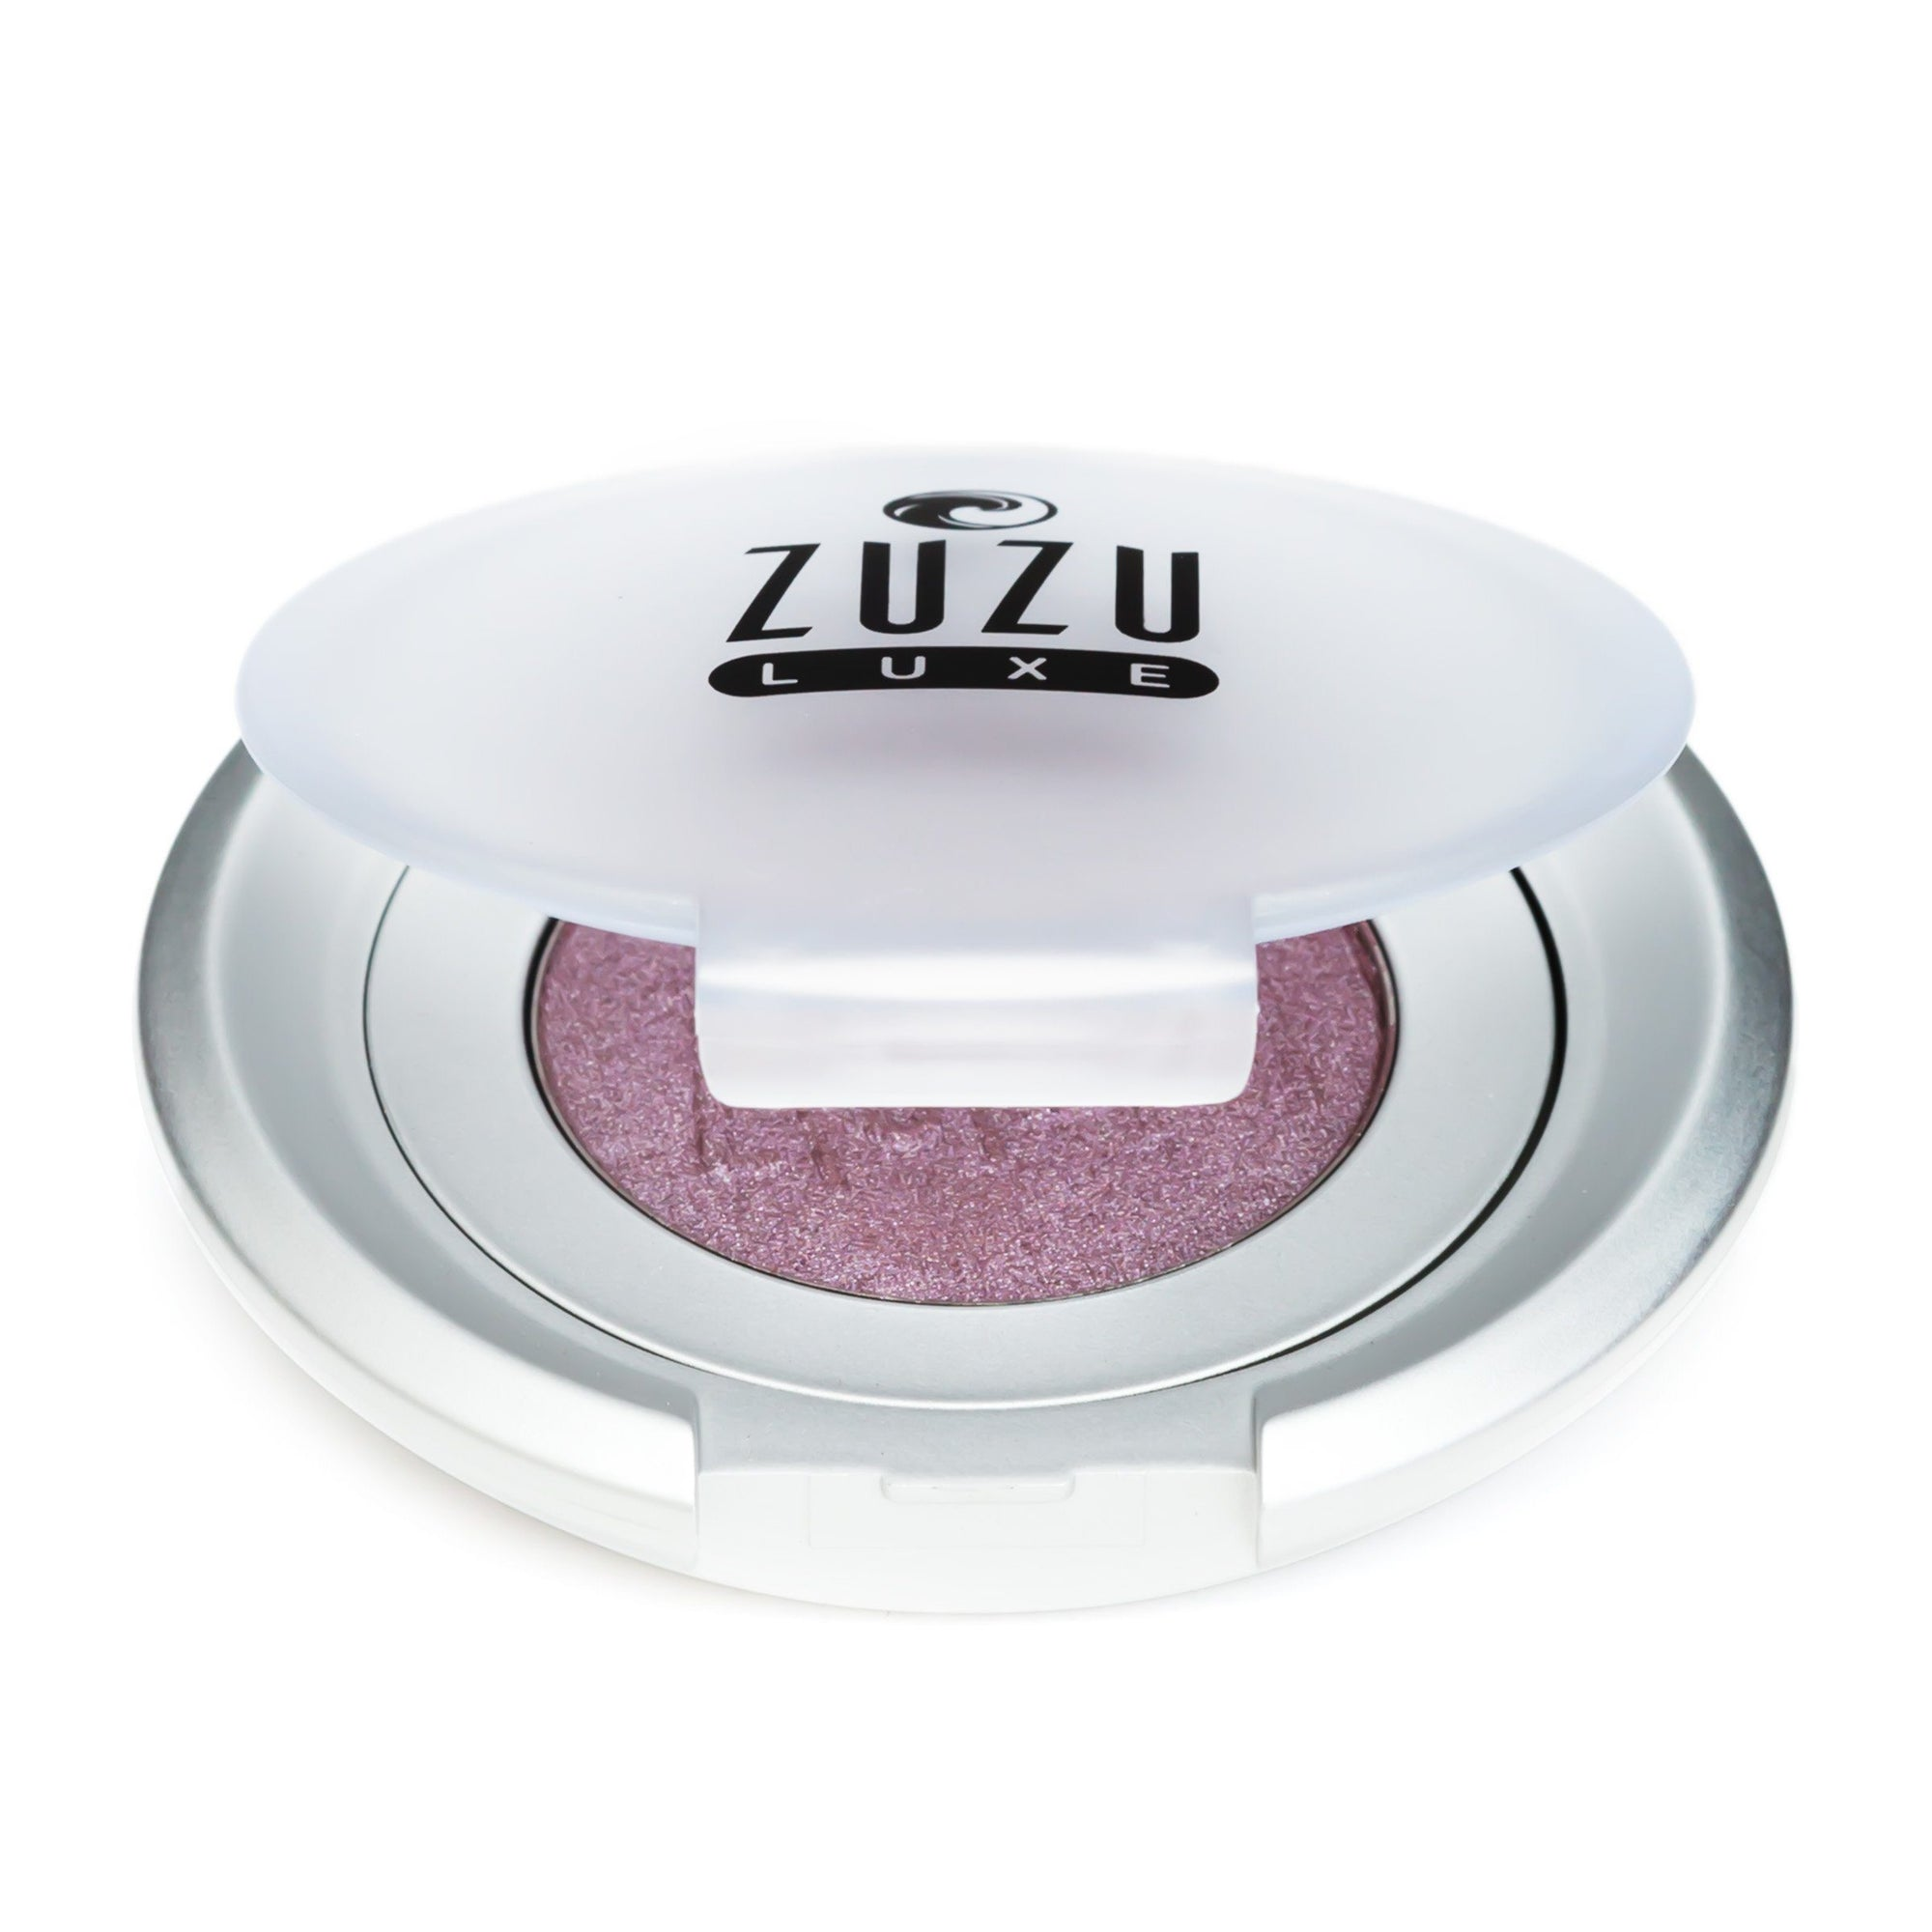 Beauty & Skin Care - Zuzu Luxe - Vegan Eyeshadow, Dusk